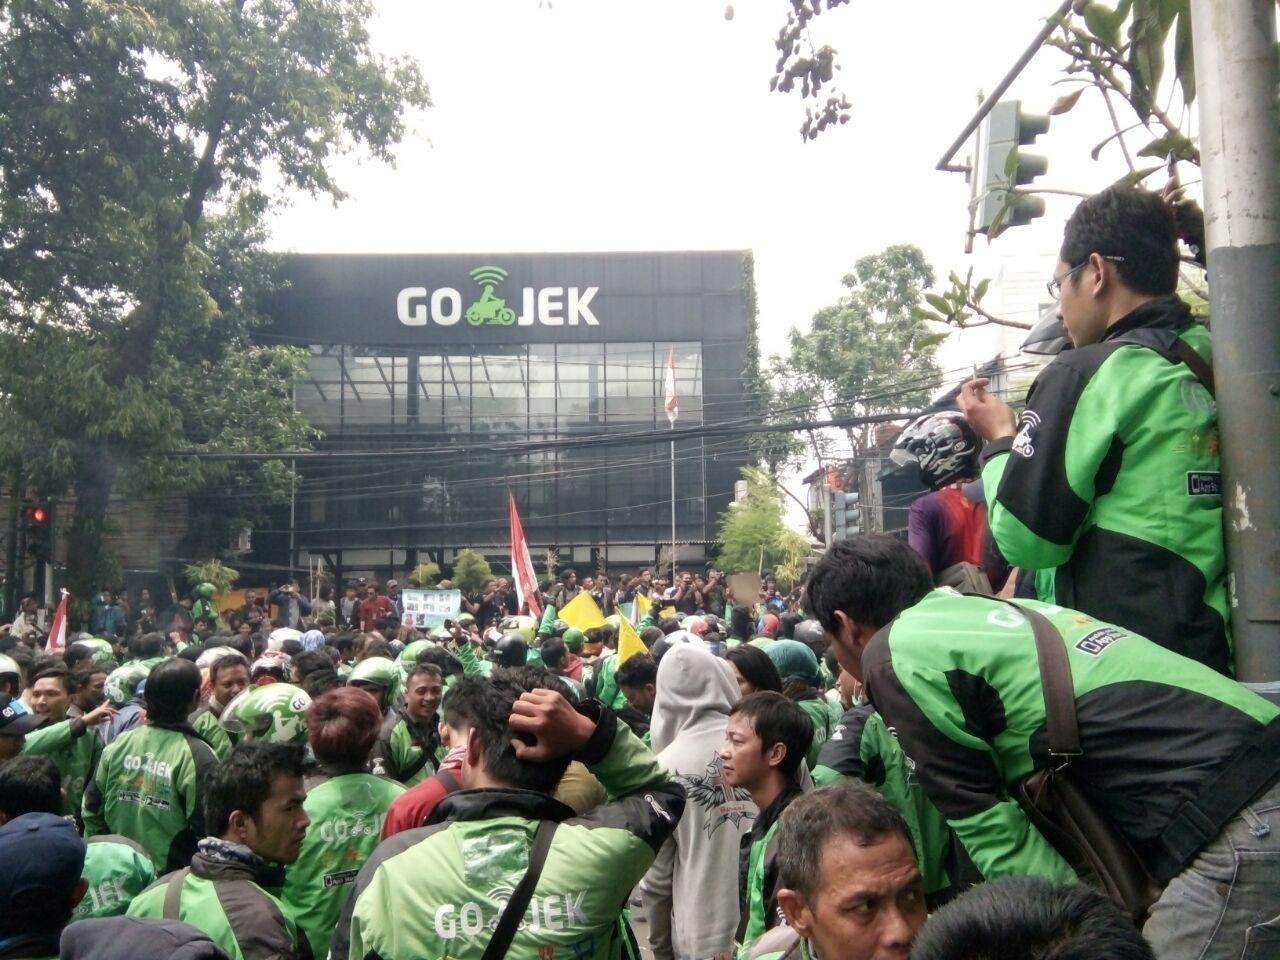 Hundreds of Go-Jek drivers protest 'unfair policy'